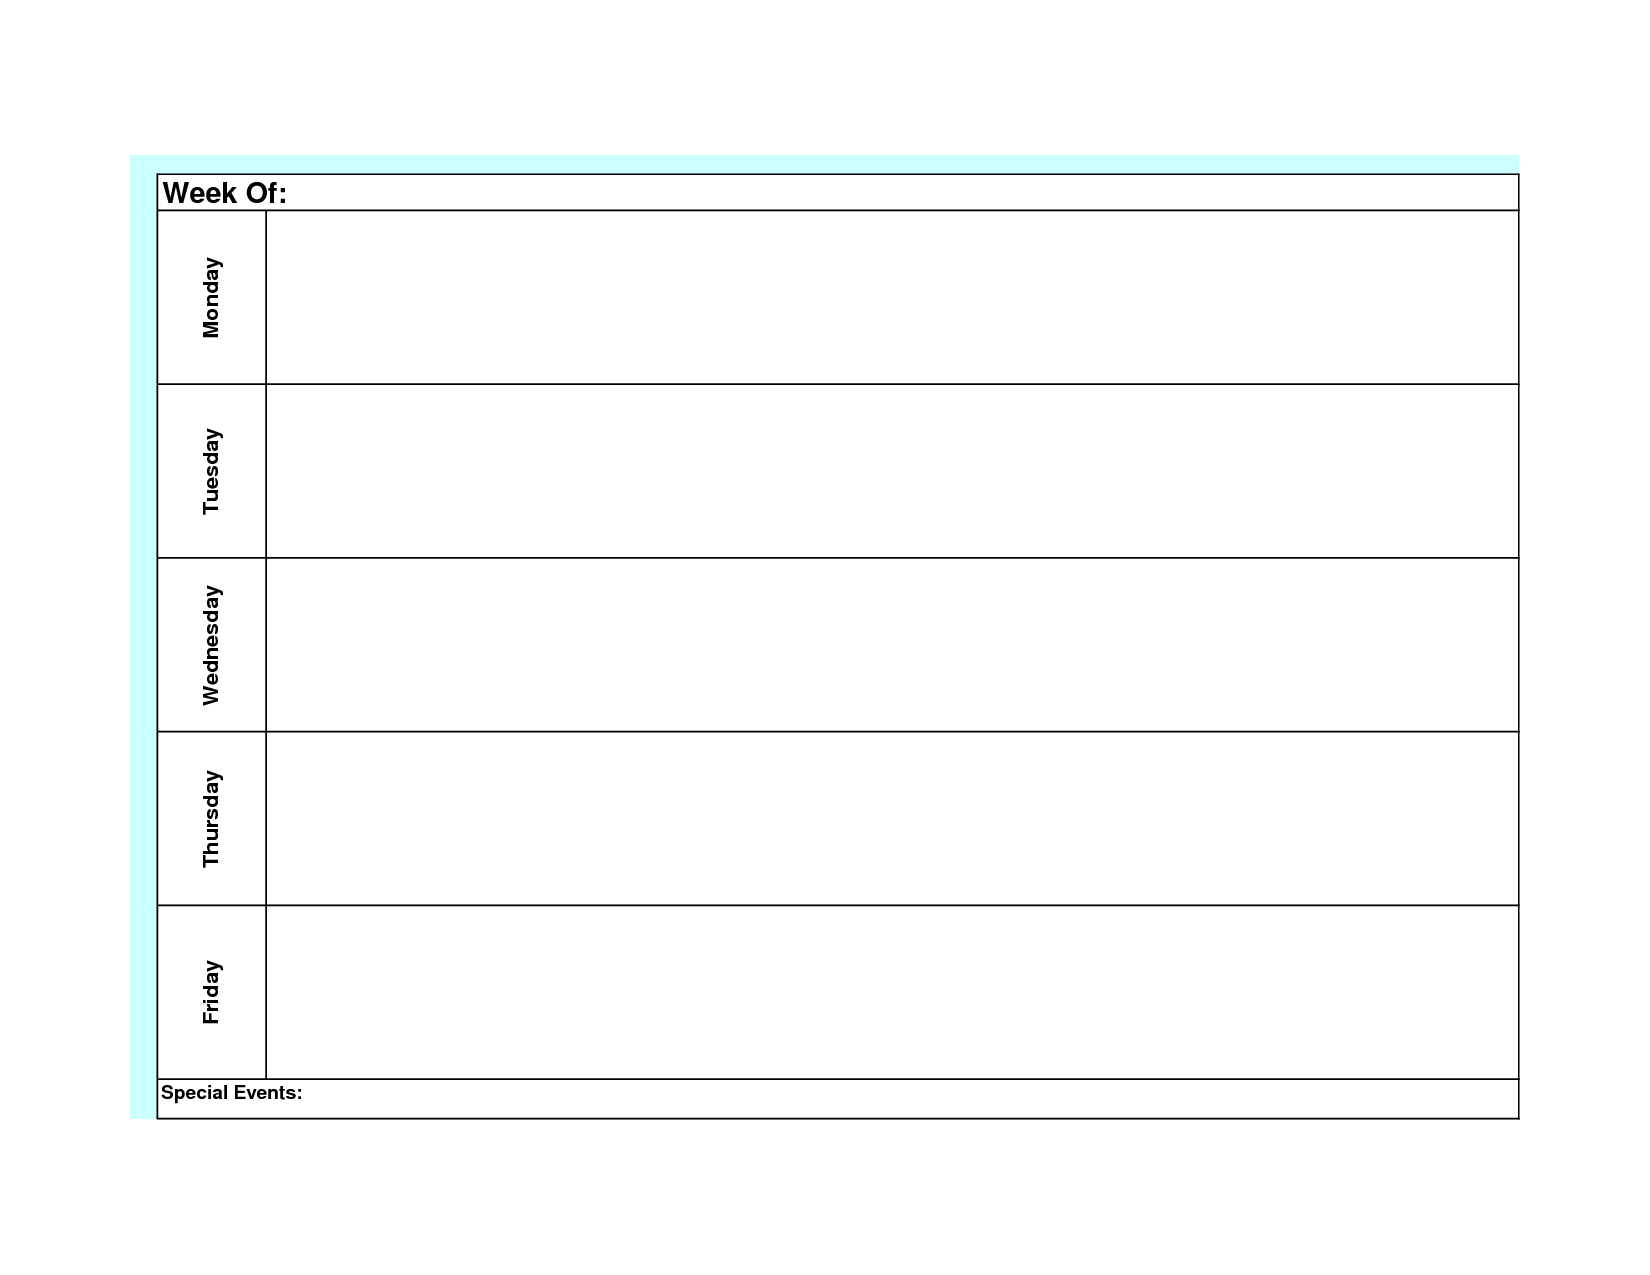 Blank Weekly Calendar Template Monday Friday (With Images Schedule Sheet Monday To Friday